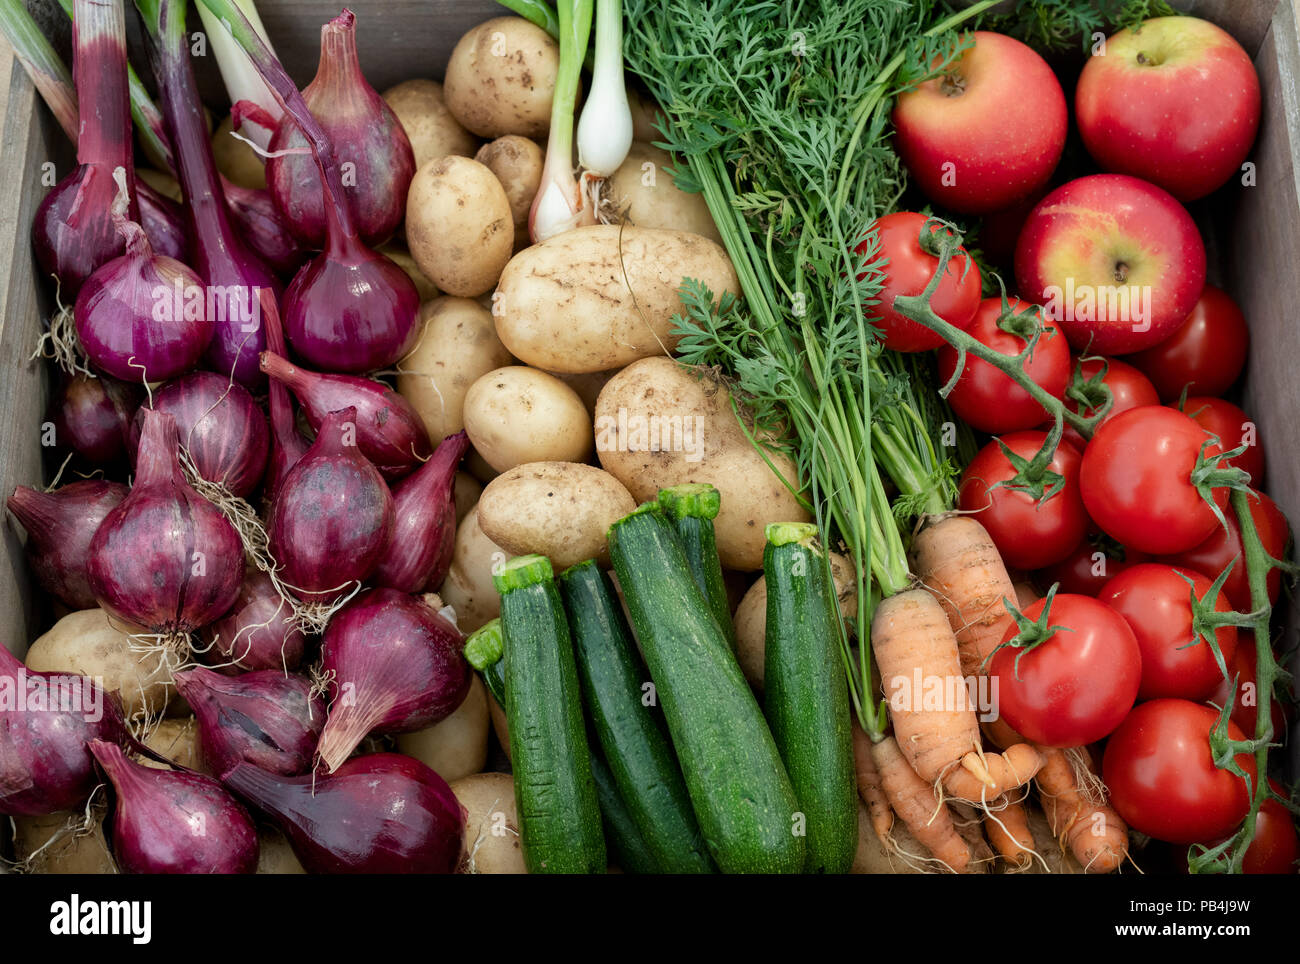 Vegetable basket display at RHS Tatton Park flower show 2018. Cheshire, UK - Stock Image